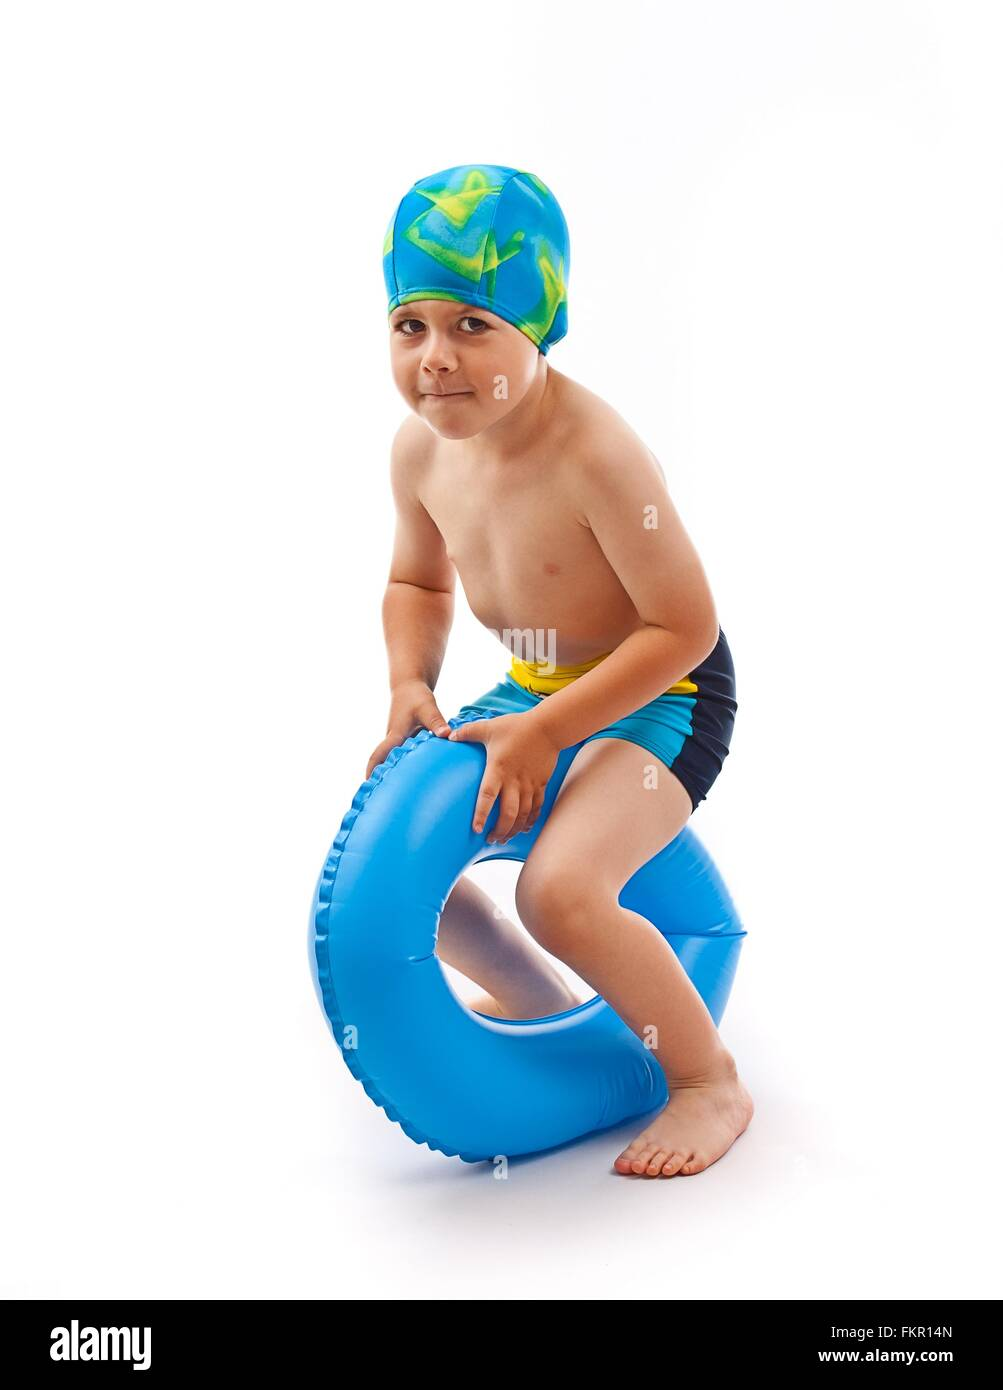 Funny little boy playing with blue life ring in swim cap, isolated in white - Stock Image